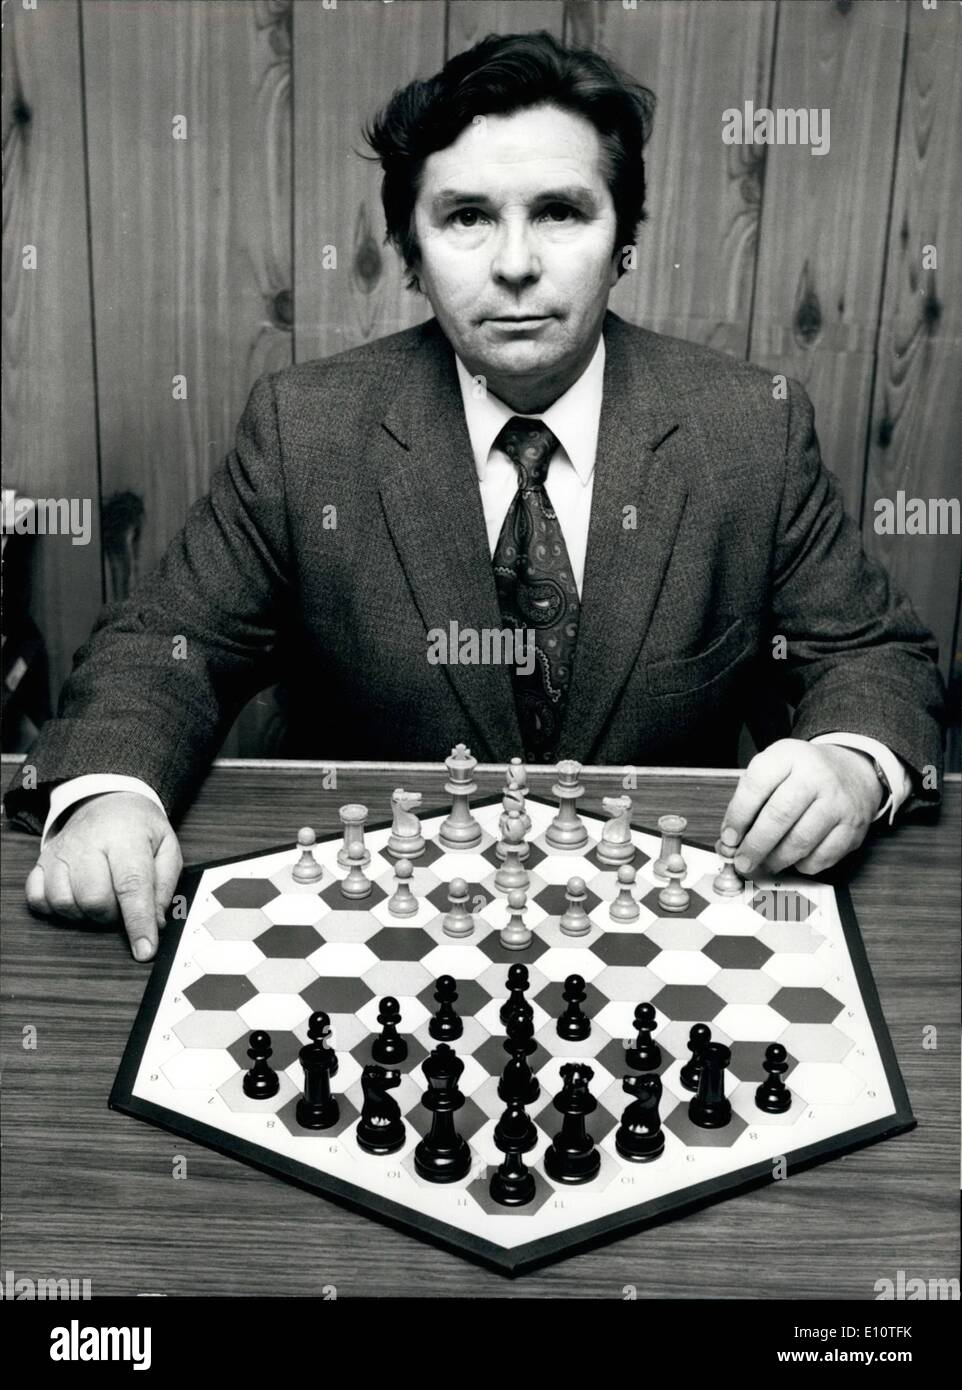 Feb. 02, 1974 - A New Version Of The Game Of Chess On An Hexagonal Board: Mr. Wladyslav Glinski, a Polish-born Briton,has created a new version of the game of chess which is played on an hexagonal board. Mr. Glinski, 52, who is an accomplished orthodox chess player, has spent 30 years perfecting the new game, which he claims is definhitely not just for the super-brains - Stock Image